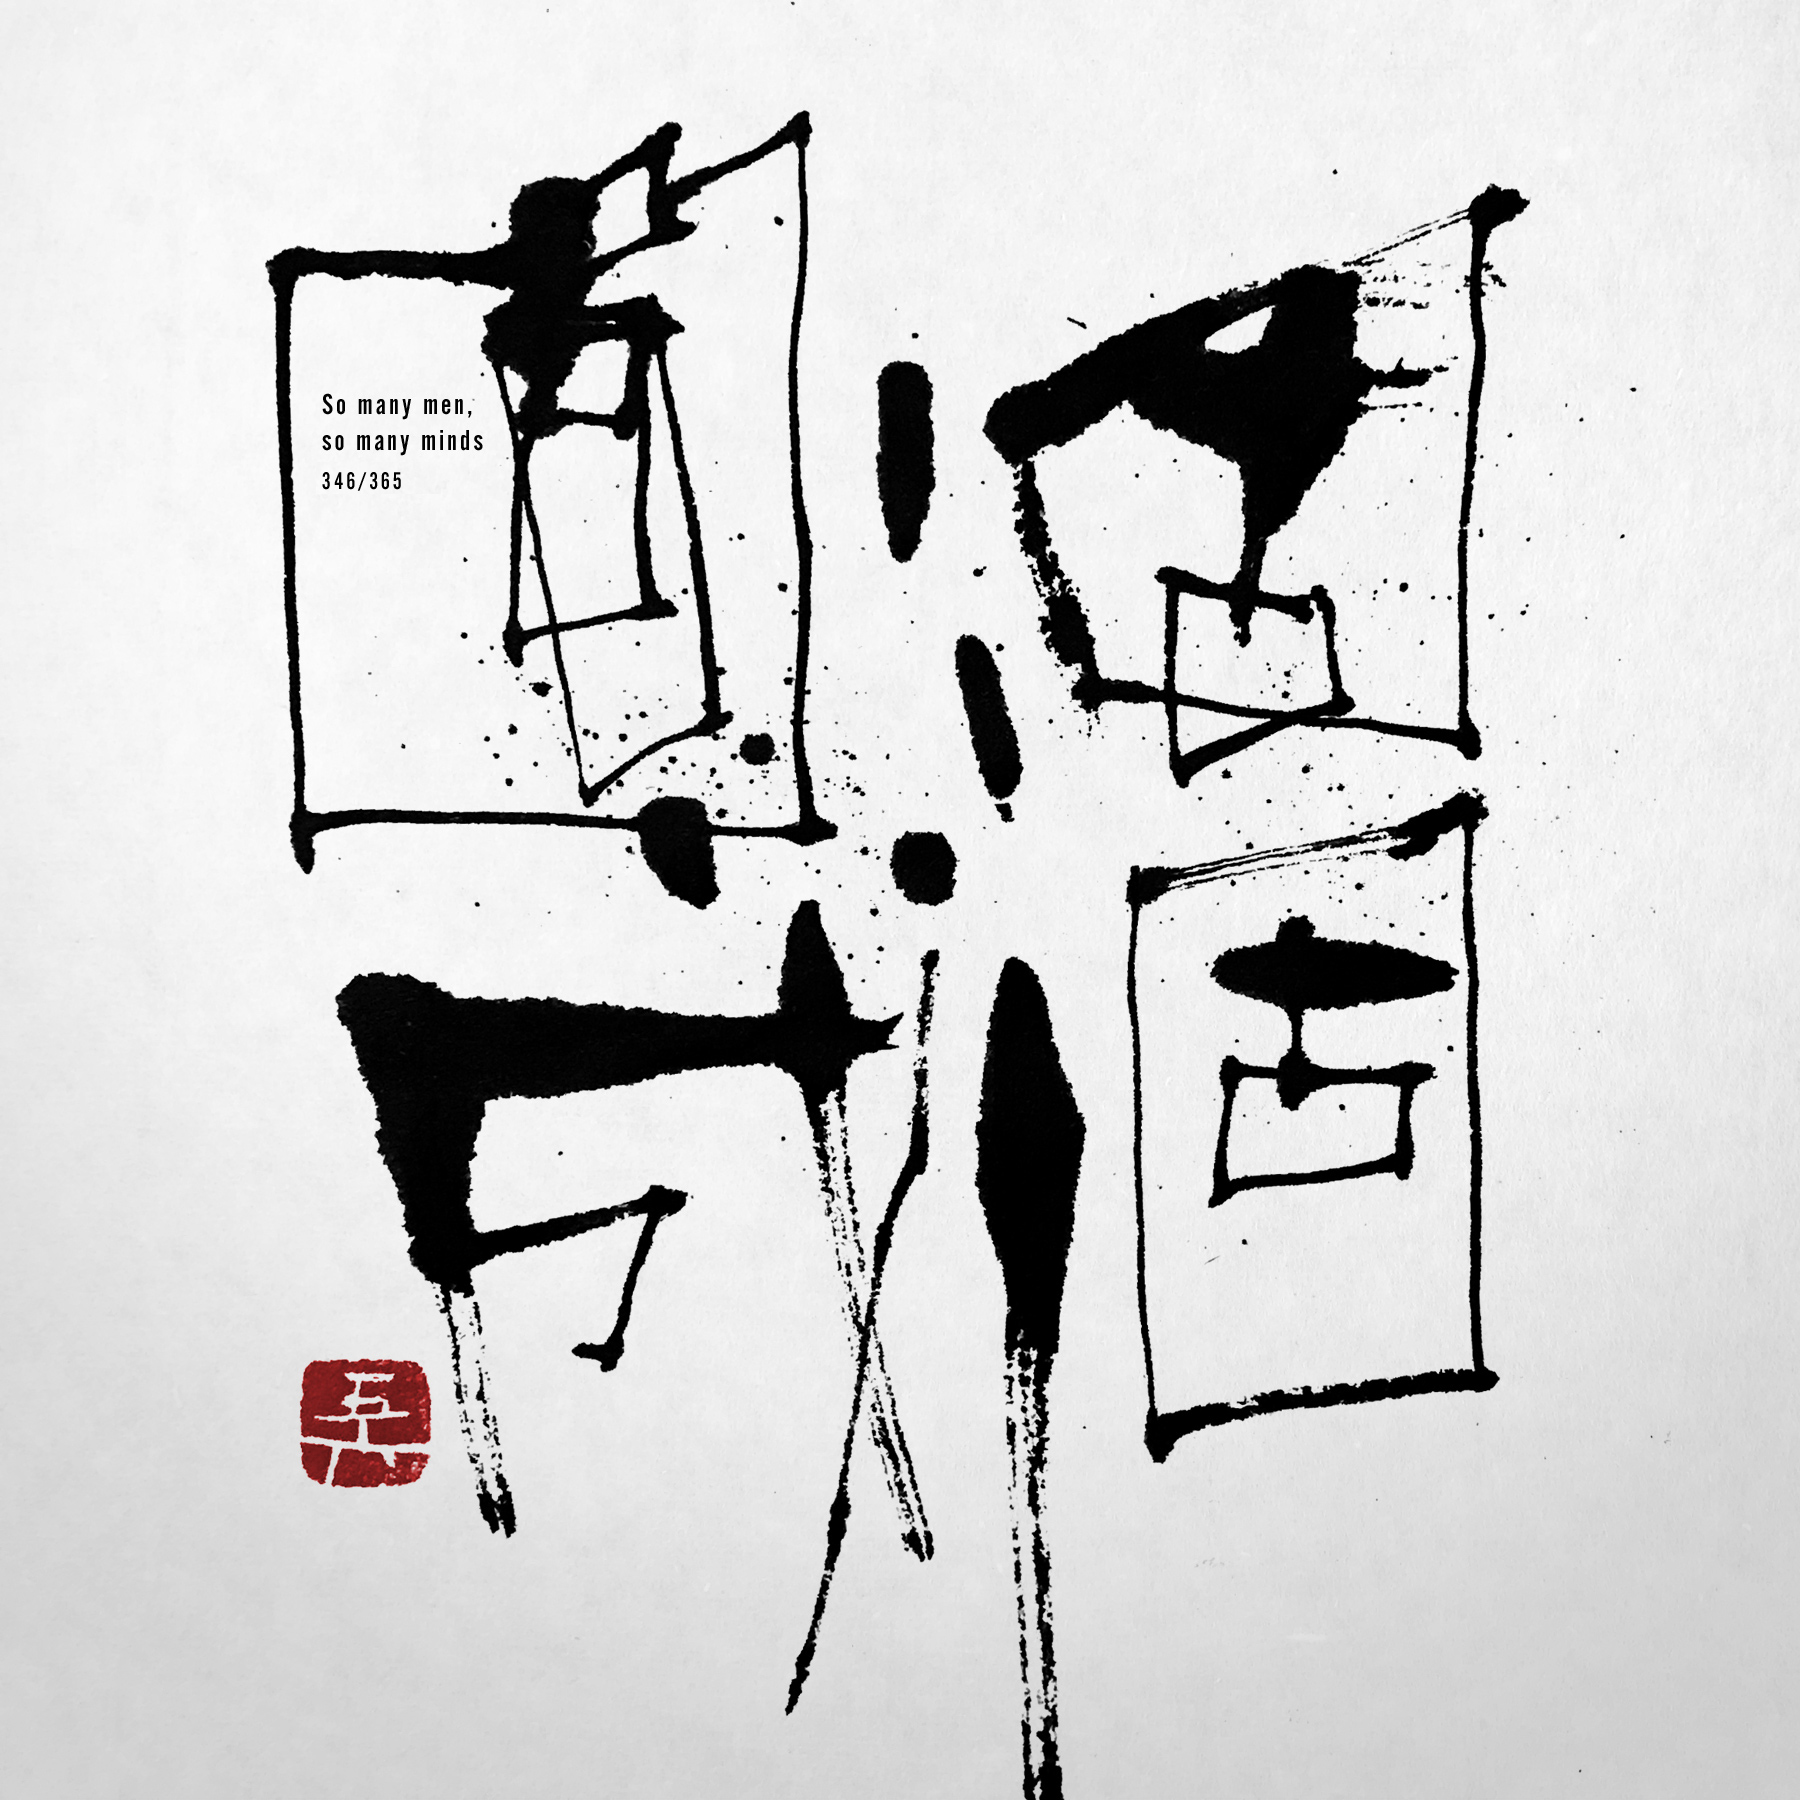 個個圓成 | so many men, so many minds 書道作品 japaneseart japanese calligraphy 書家 田川悟郎 Goroh Tagawa